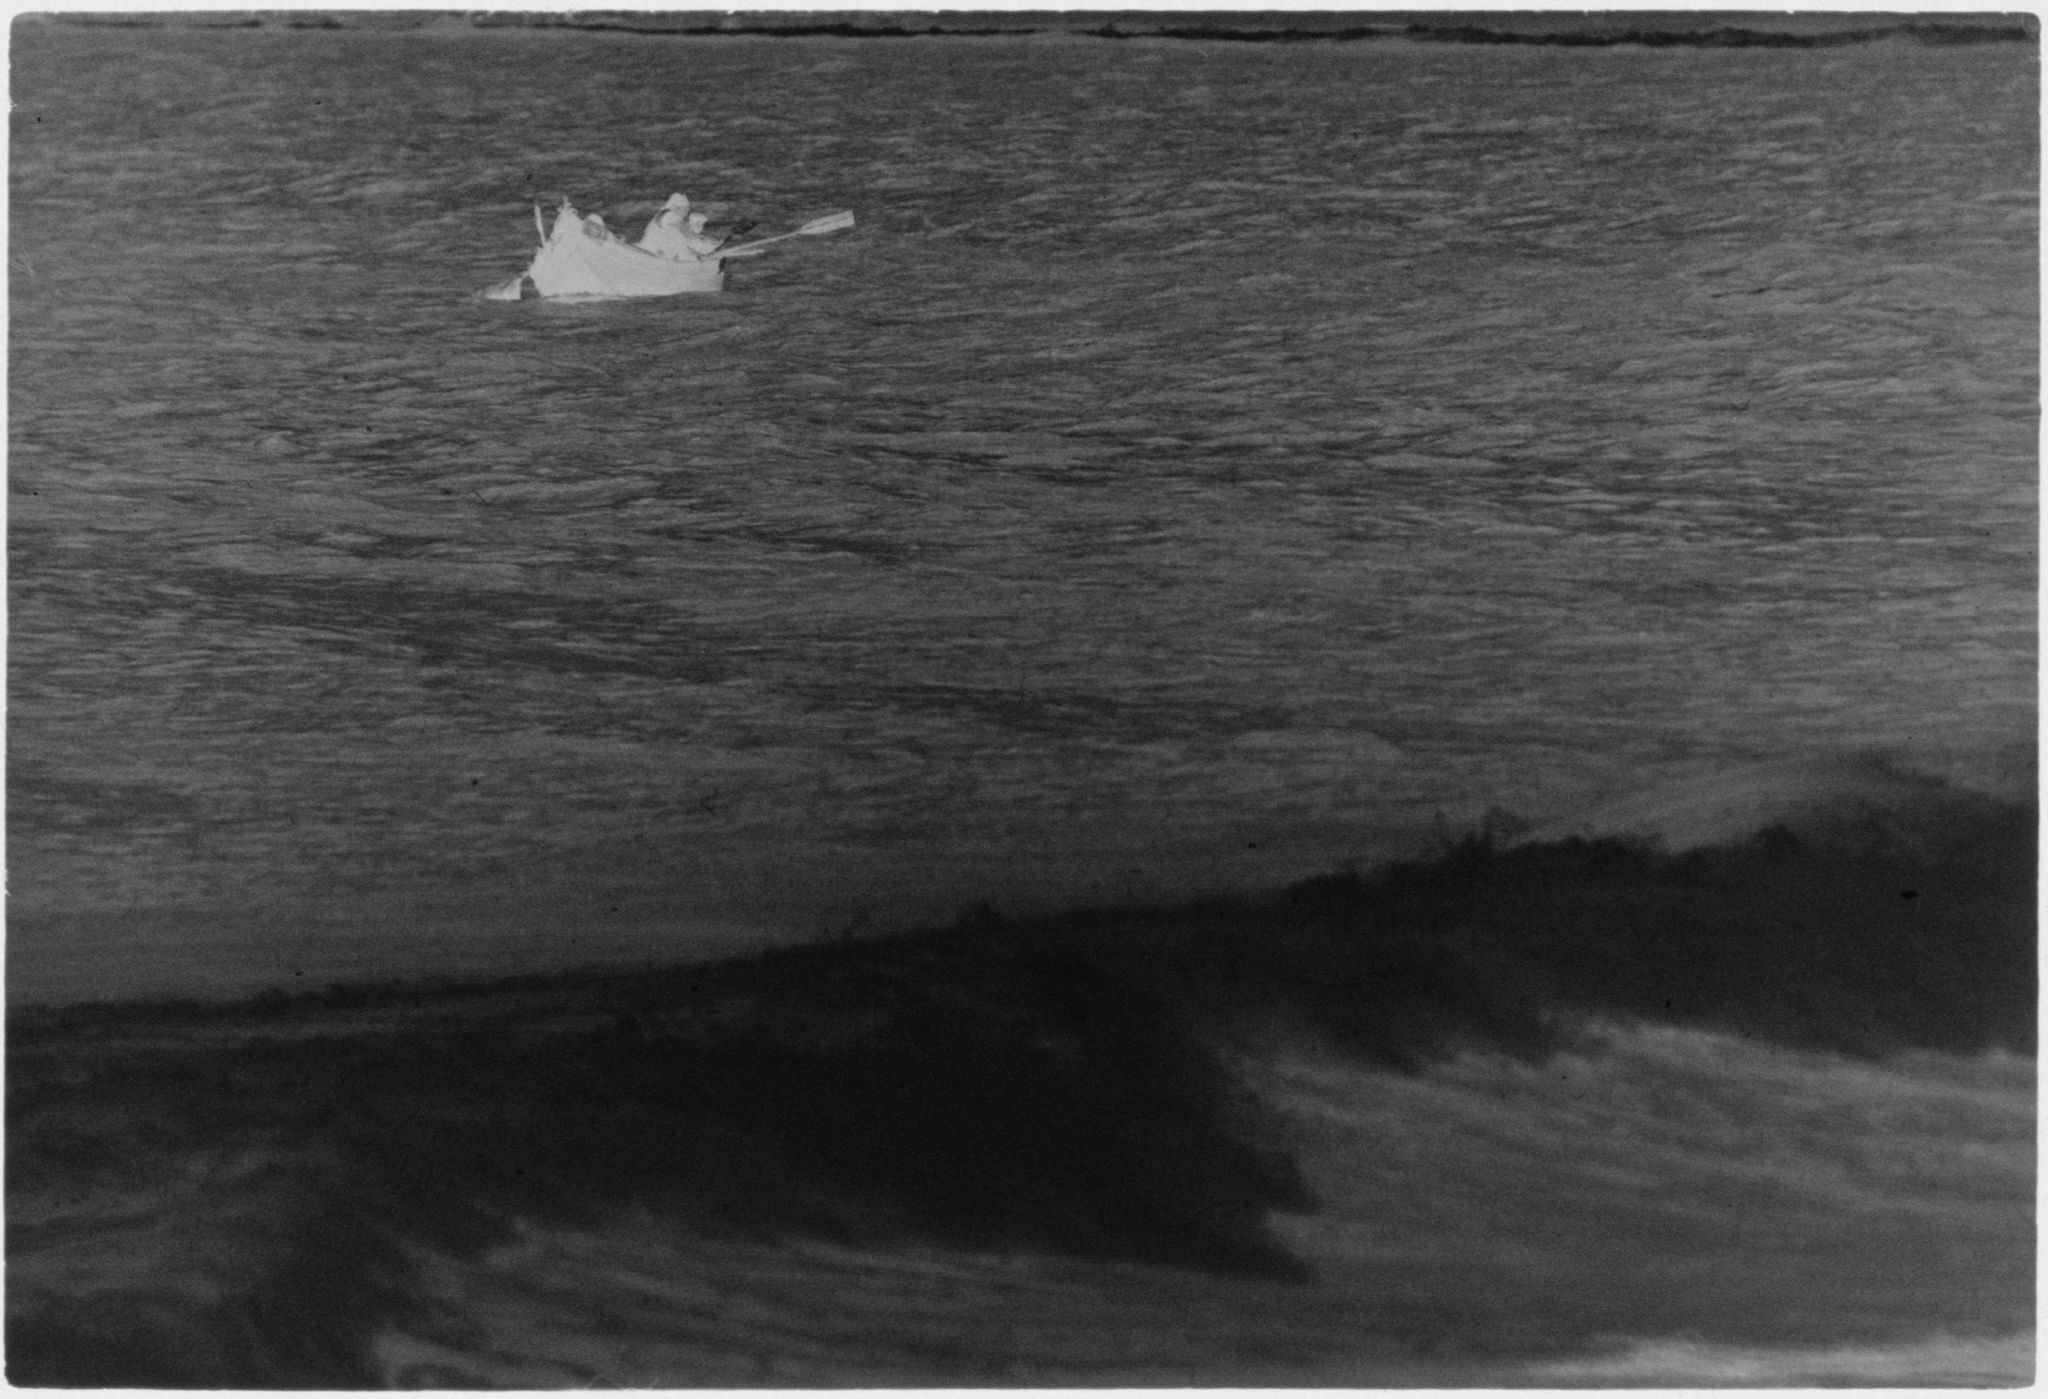 Untitled (Fishermen In Boat Off The Coast, Nazaré, Portugal)